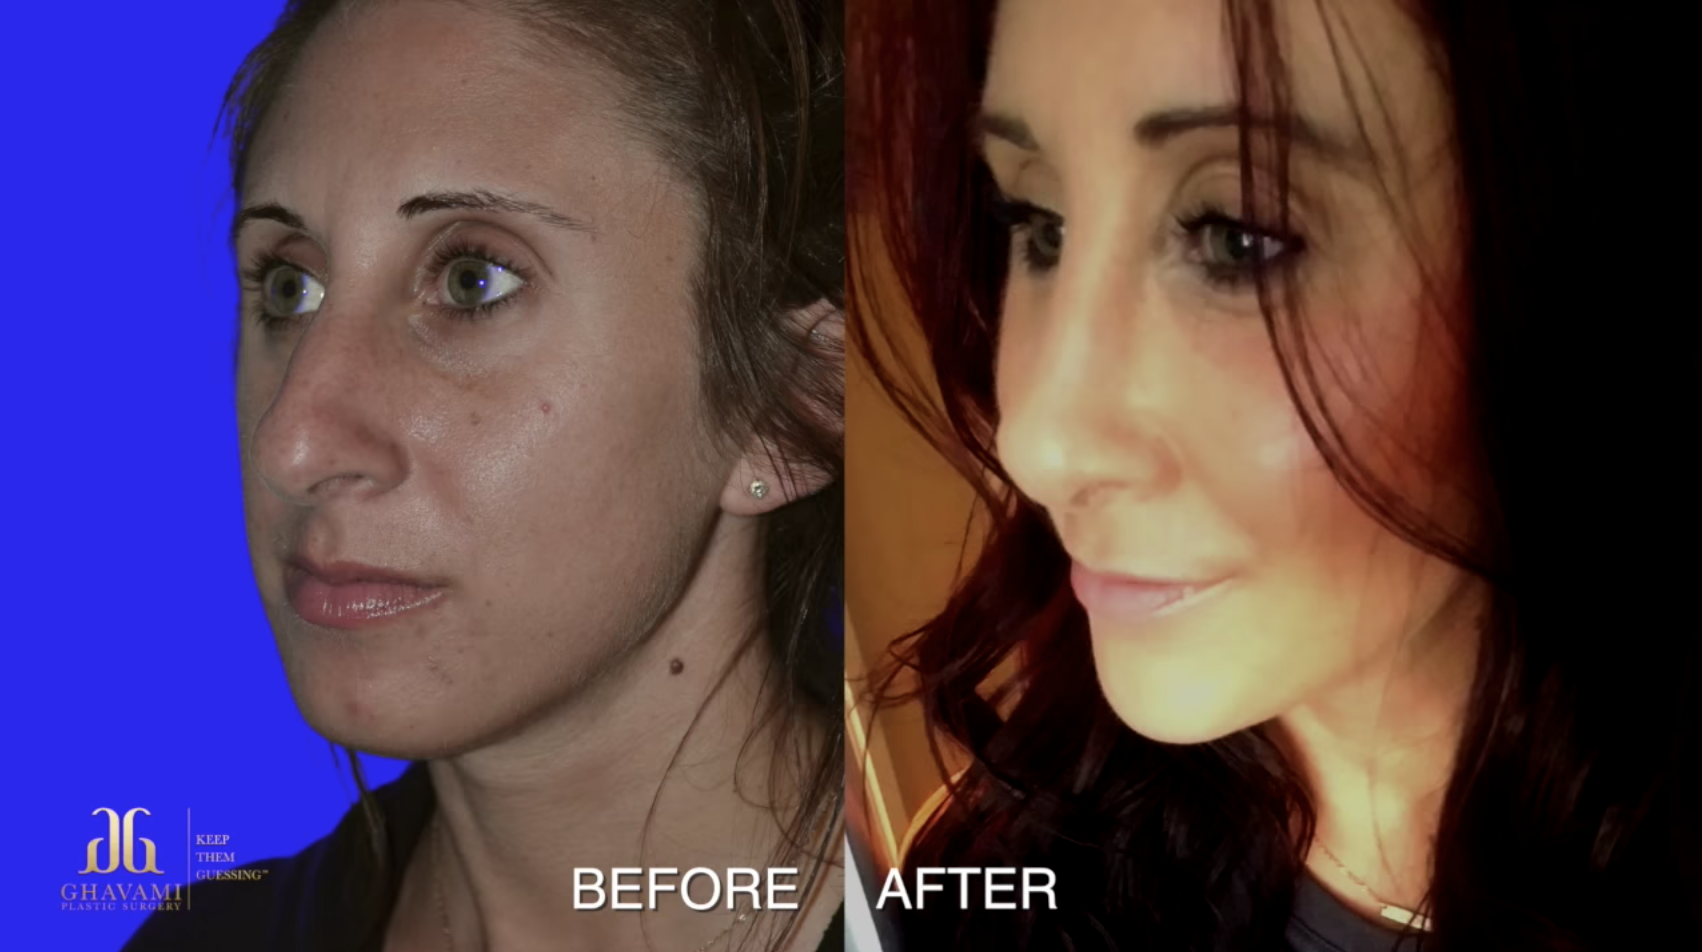 Face Surgery Before and After Transformation